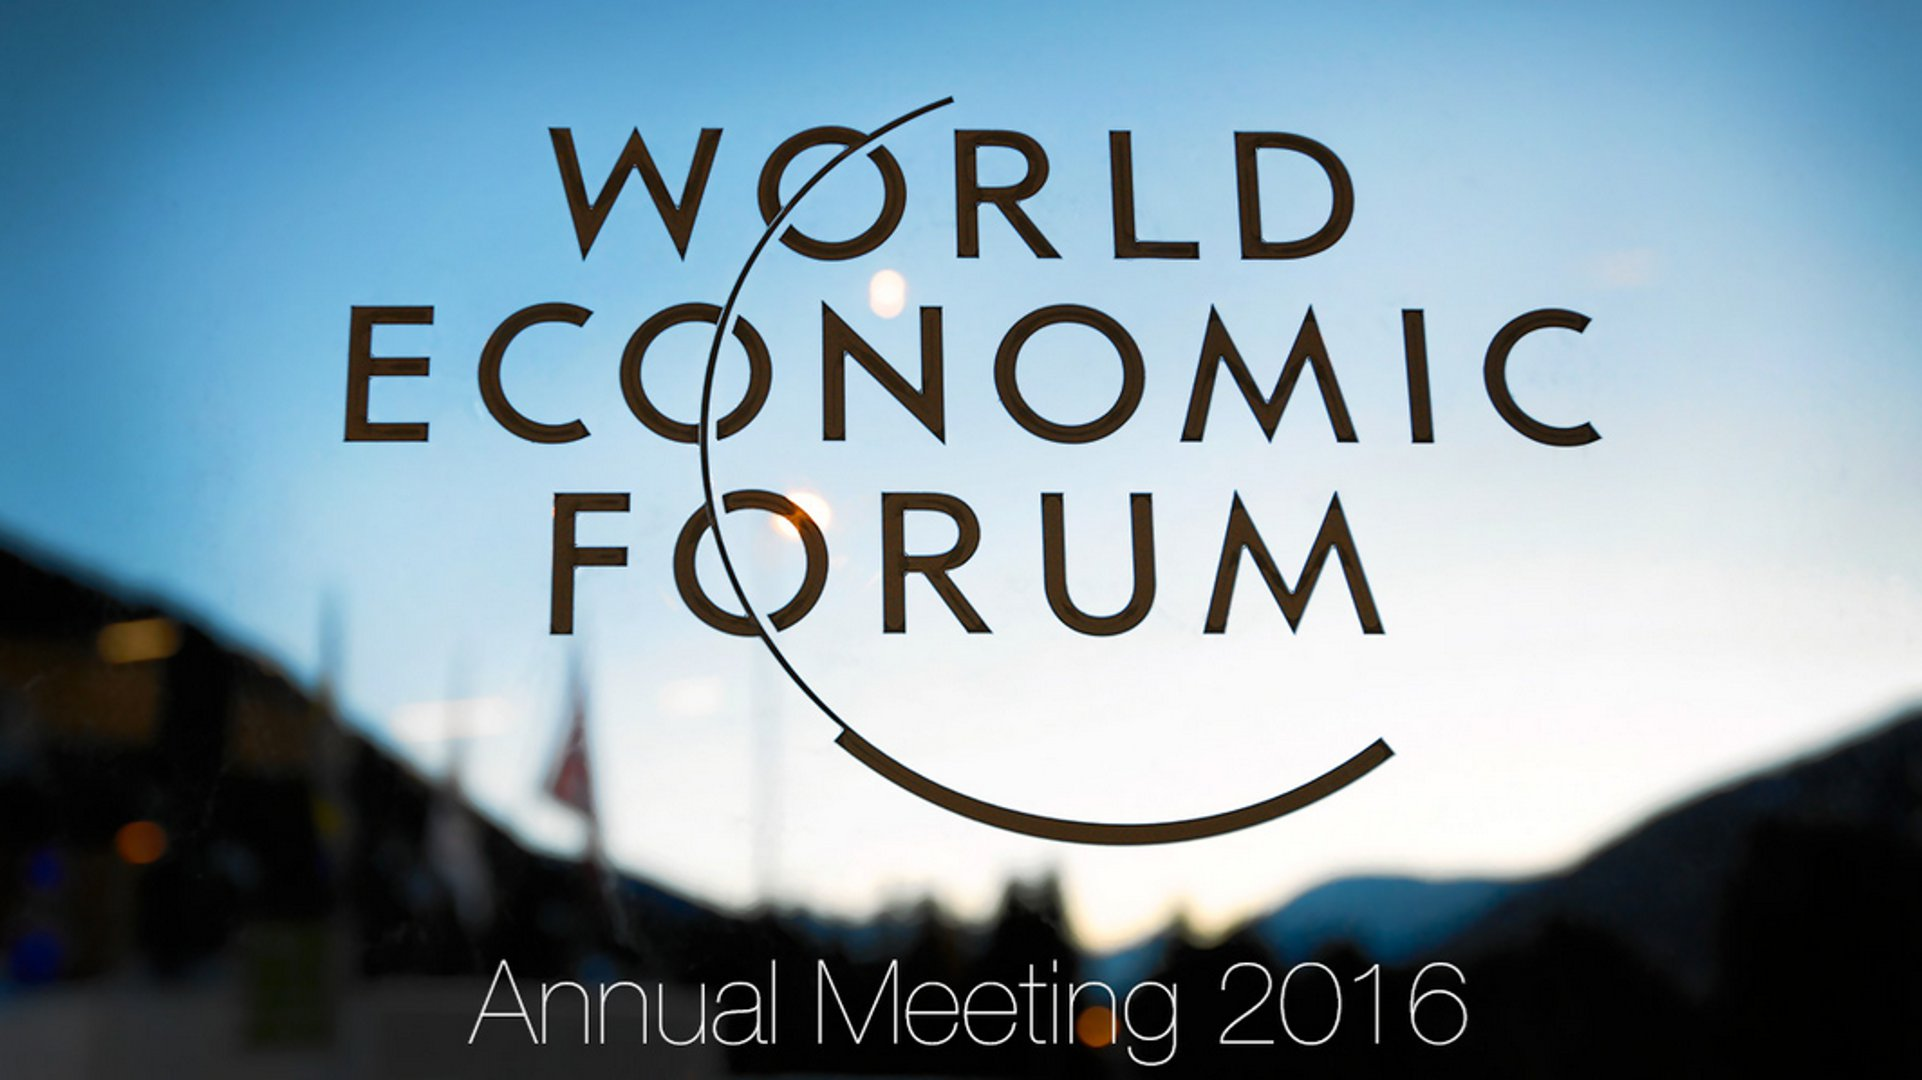 Livestream: World Economic Forum Annual Meeting 2016 (video)